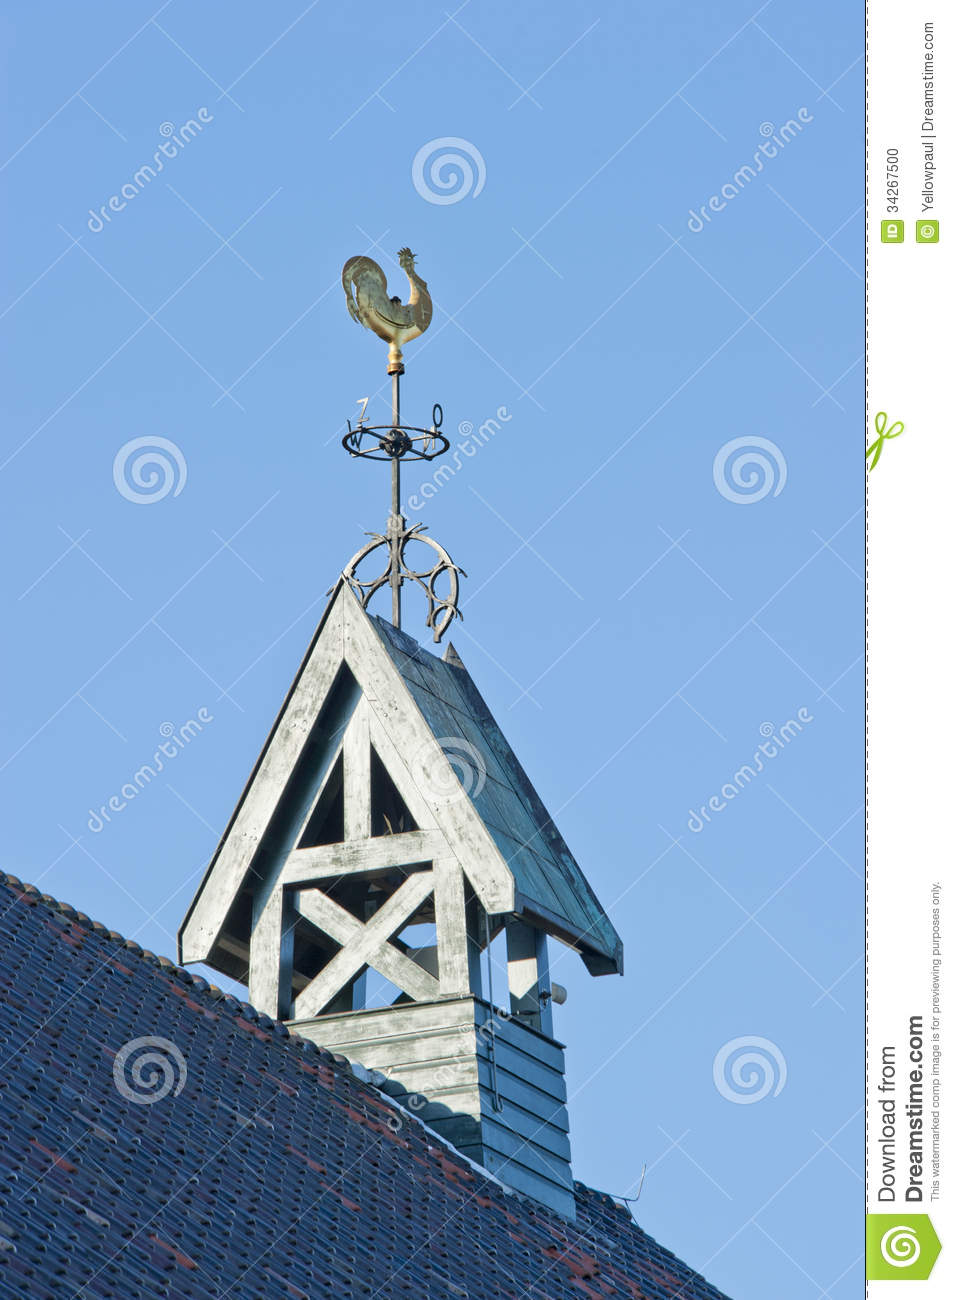 Wooden Belfry With Weather Vane And Compass Card Stock